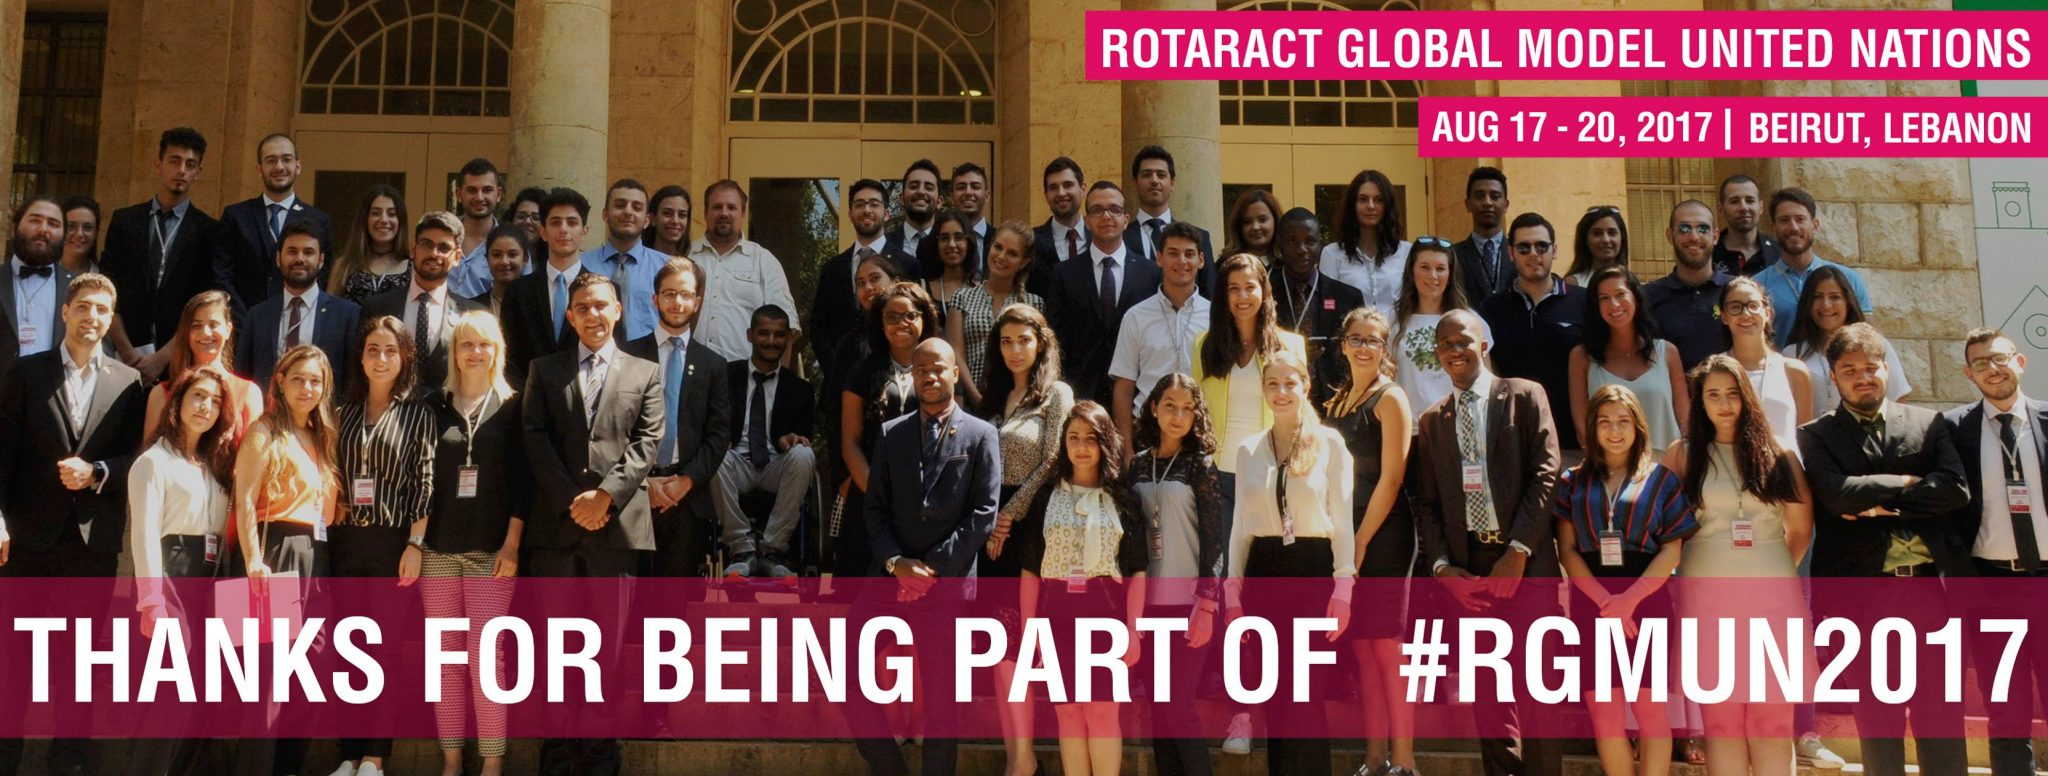 RotaractMUN and KIIT International ModelUN global partnership